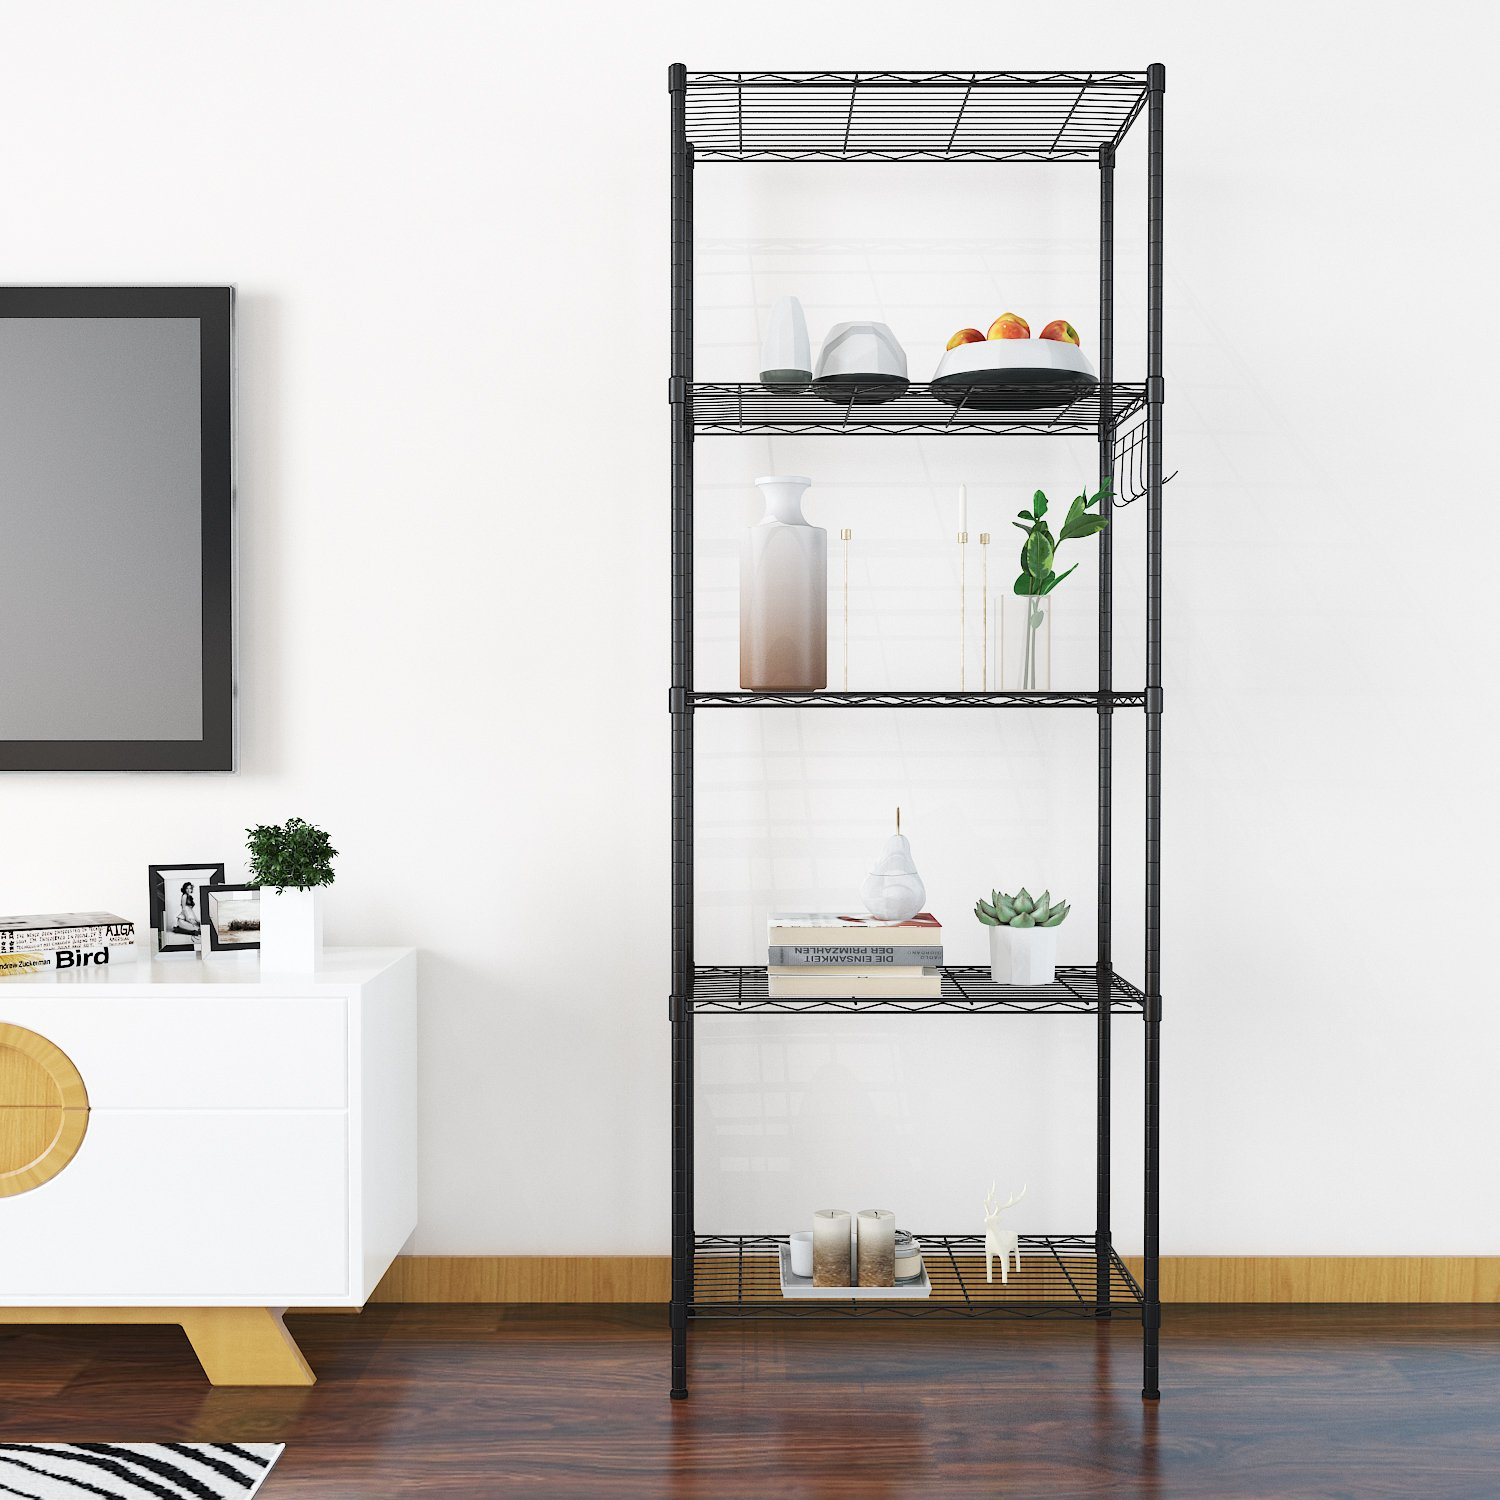 Anfan 5-Tier Kitchen Wire Shelving Unit 5-Shelf Storage Organizer Rack Adjustable Height with Side Hooks (5-Tier, Black)